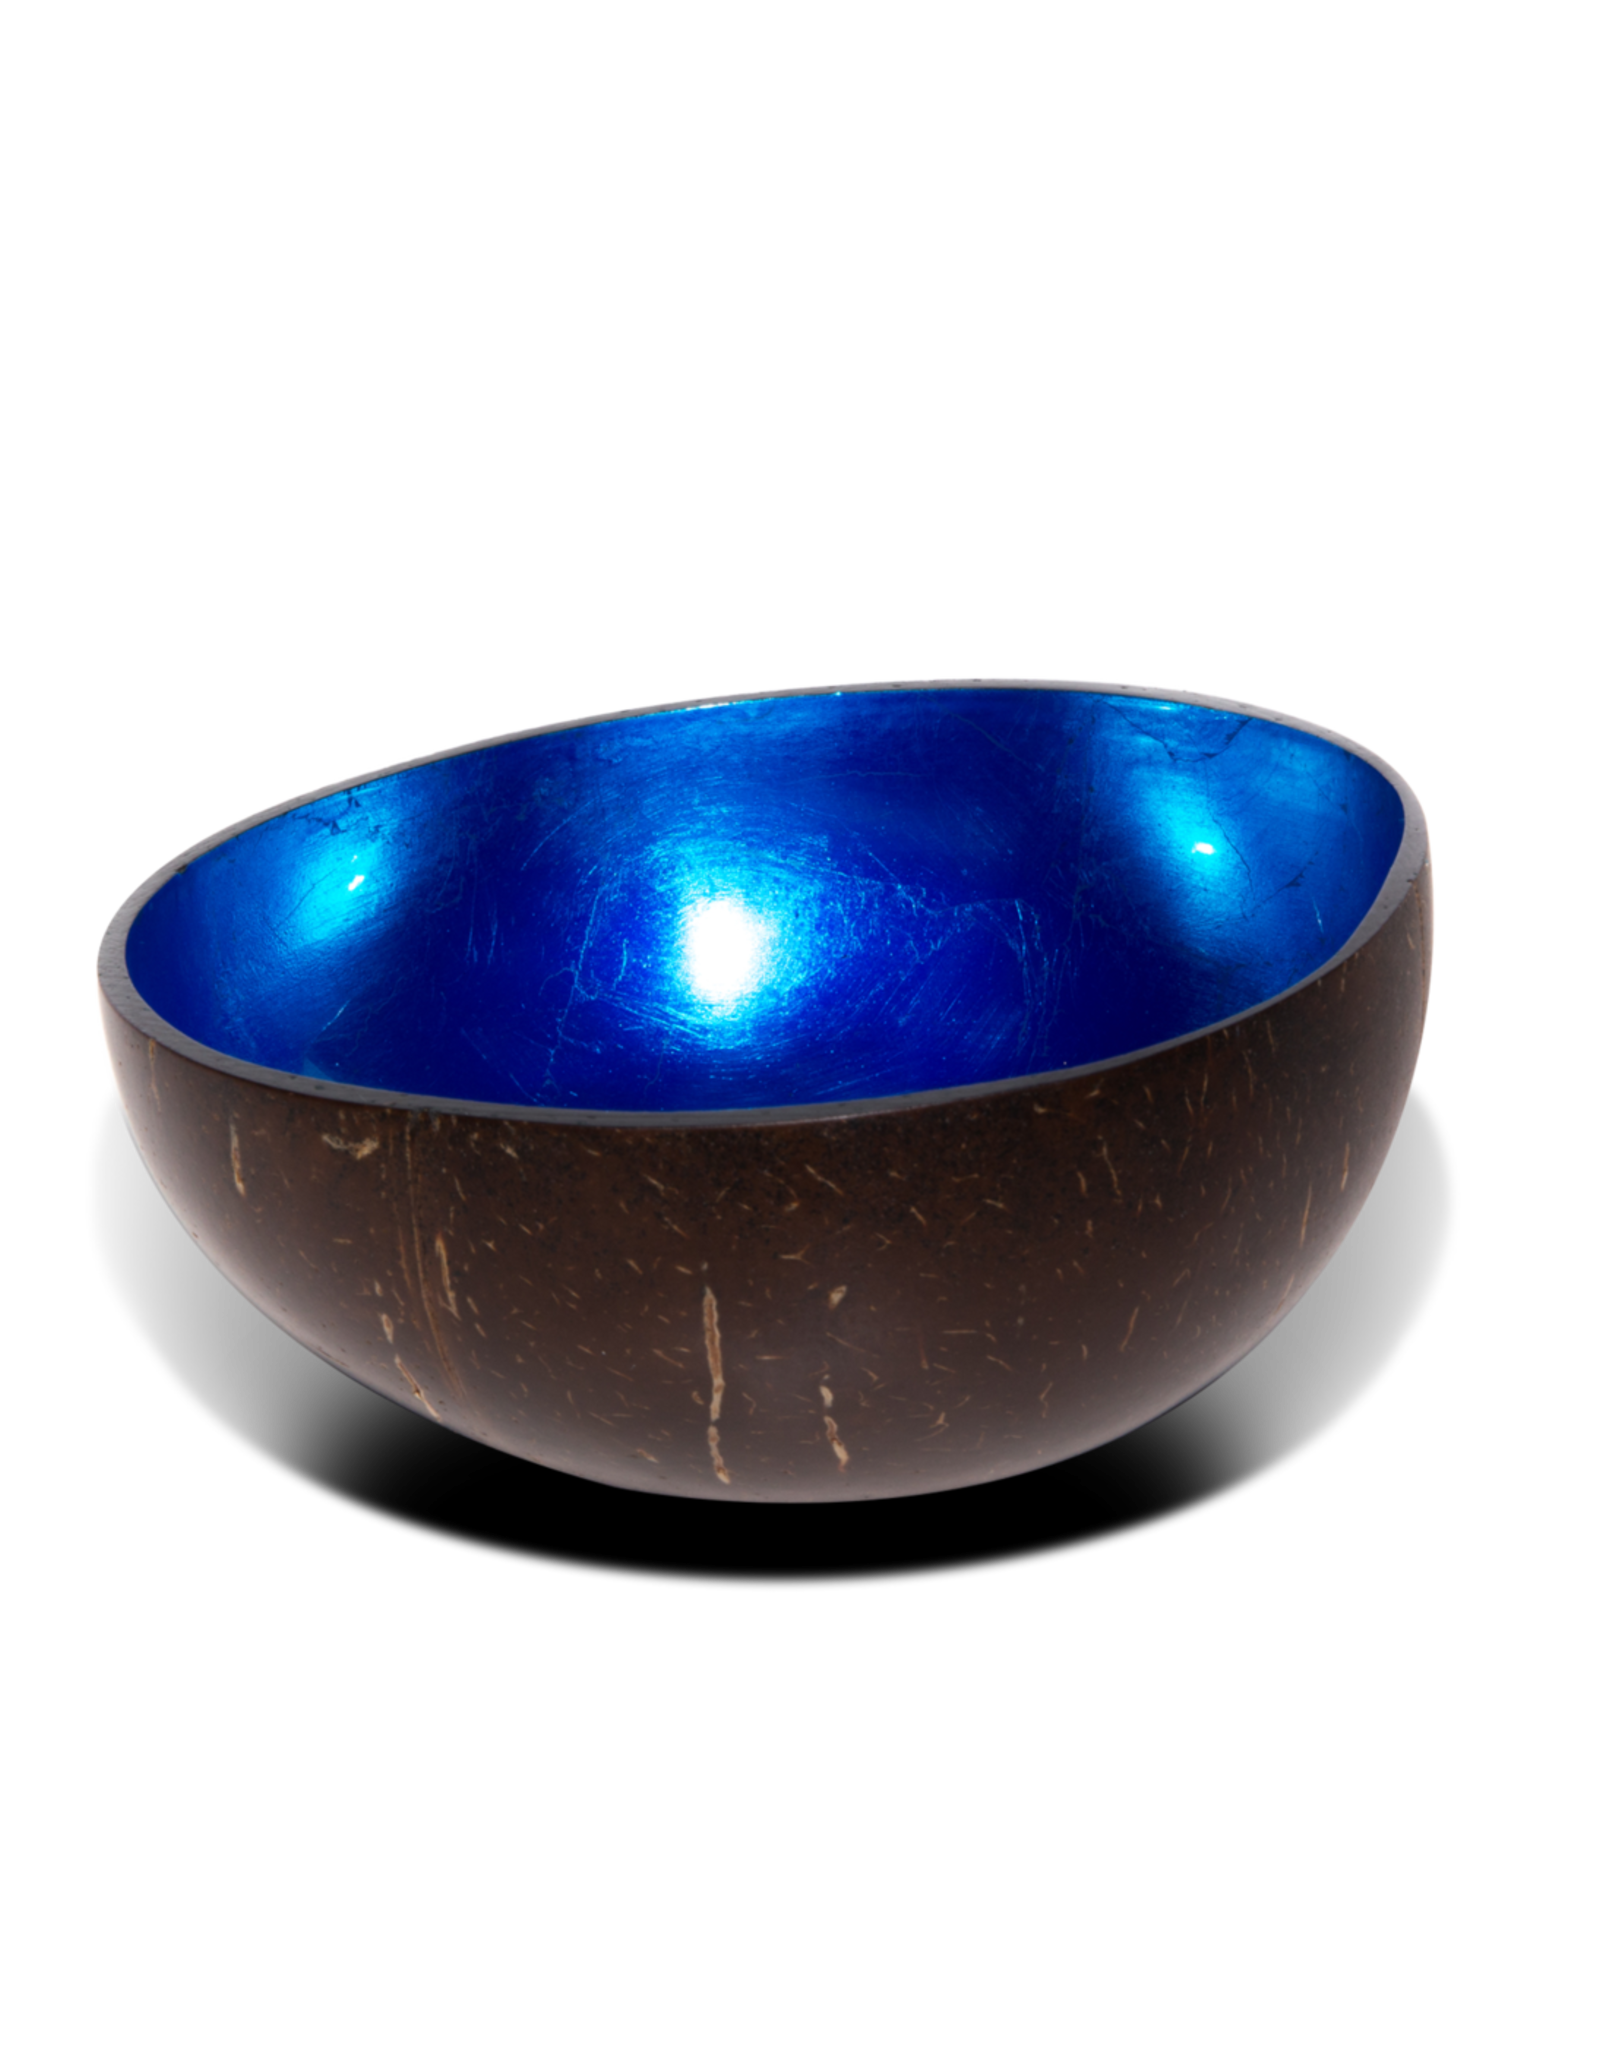 P'TIT POT LACQUER COCONUT BOWL - BLAUW METAALLAK